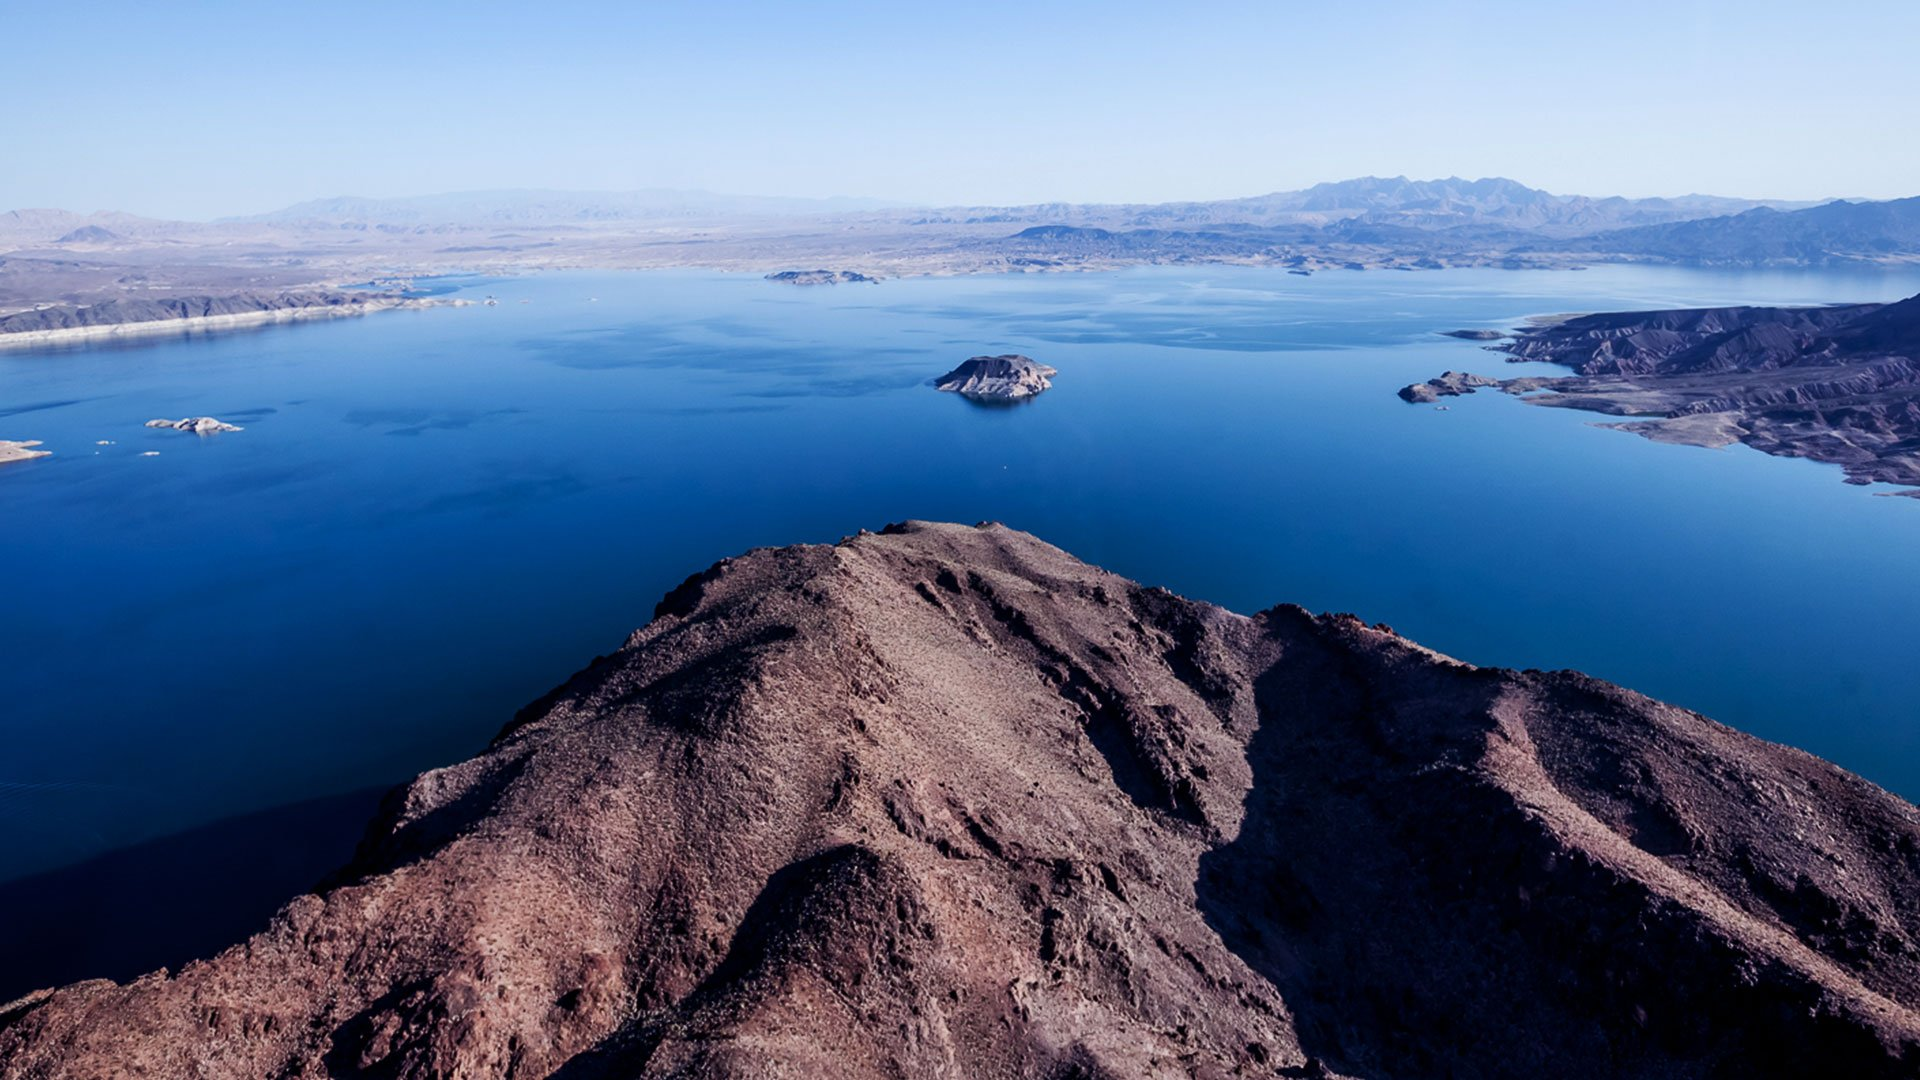 Aerial view of the bright blue waters of Lake Mead